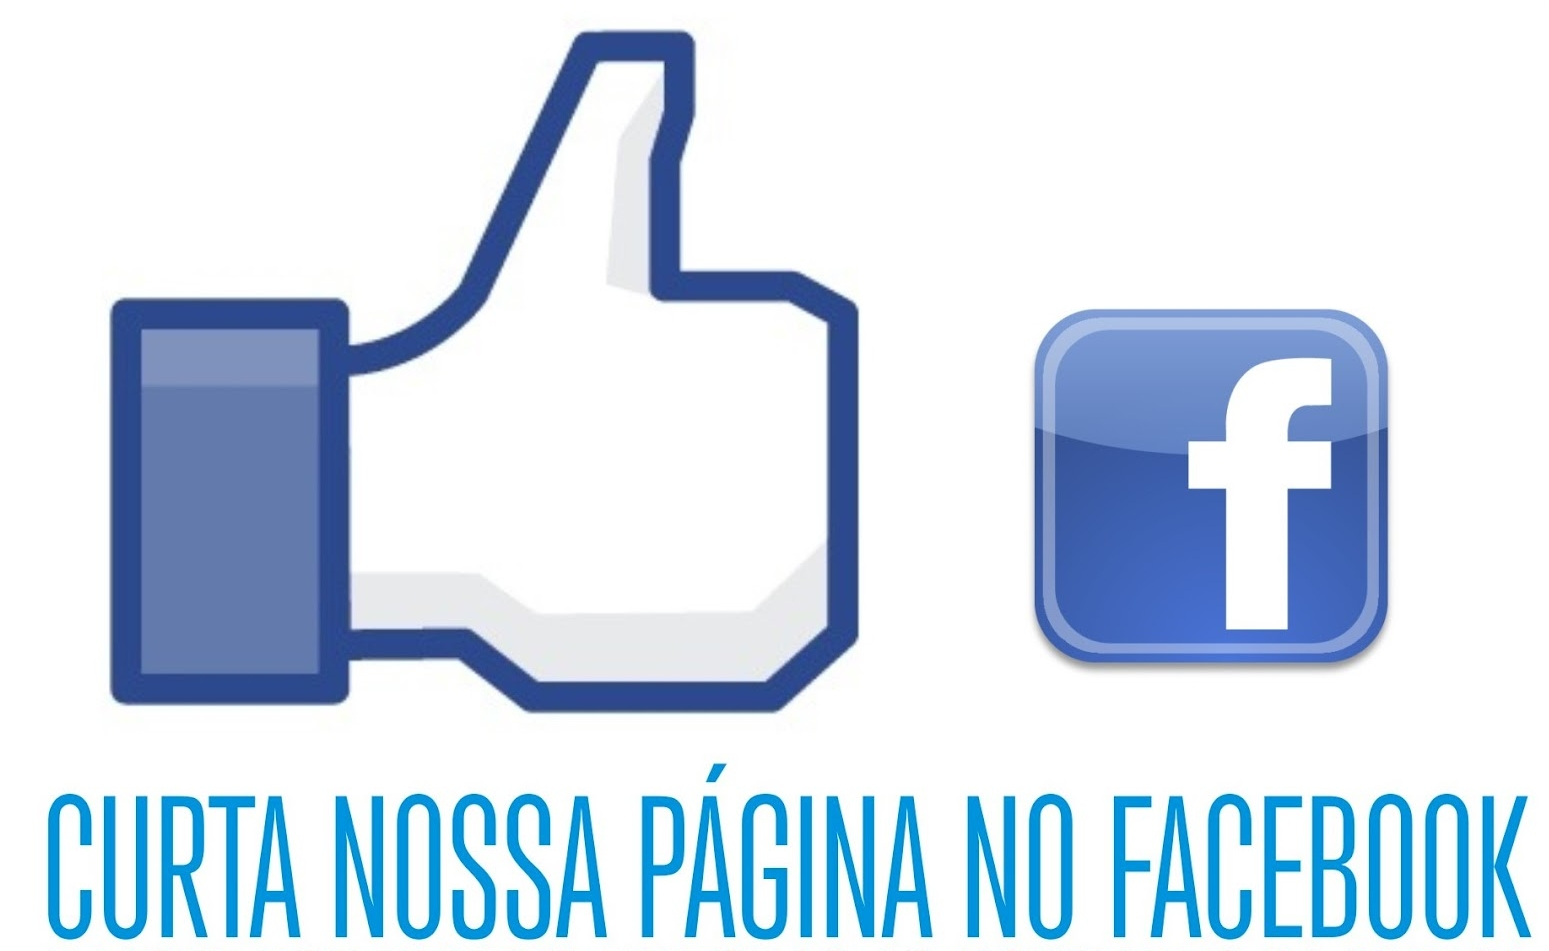 CIEP 387 no Facebook !!!